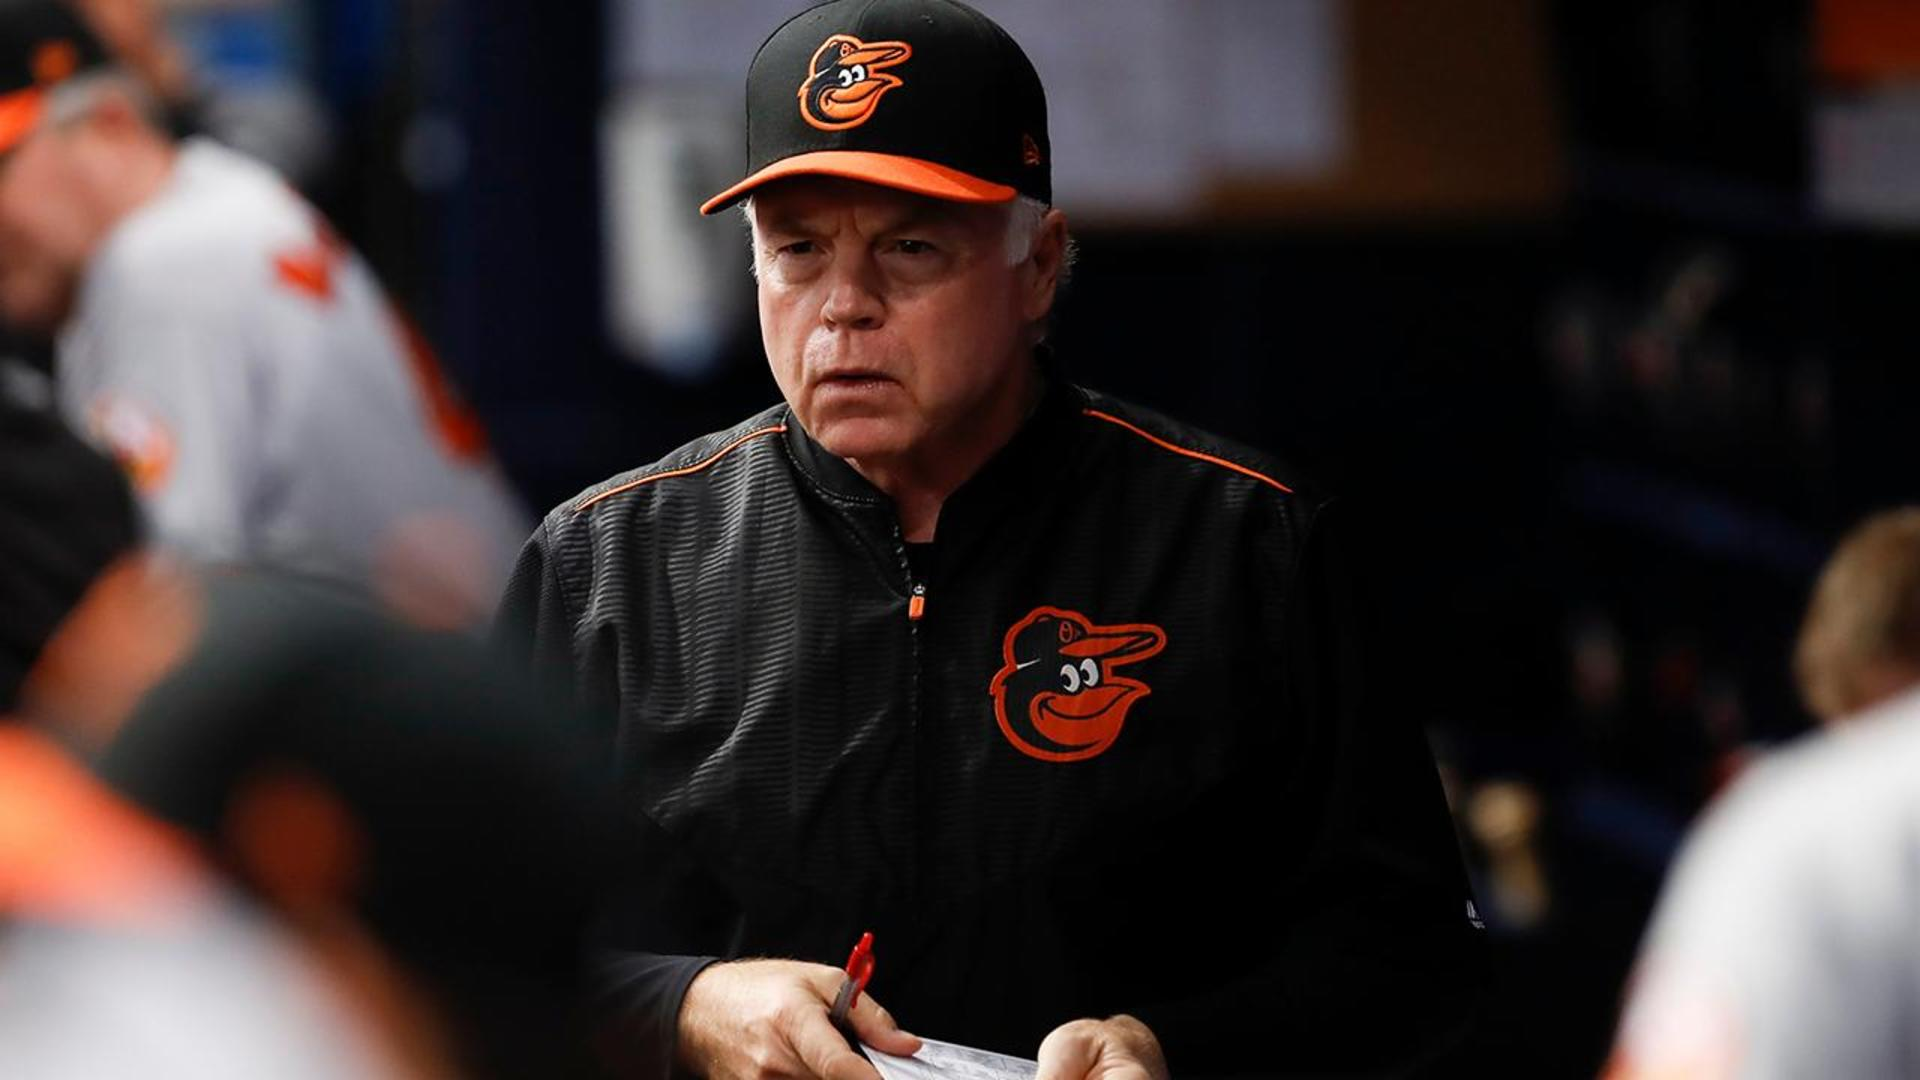 Sports Top Stories - Orioles Fire Skipper Buck Showalter, GM Dan Duquette